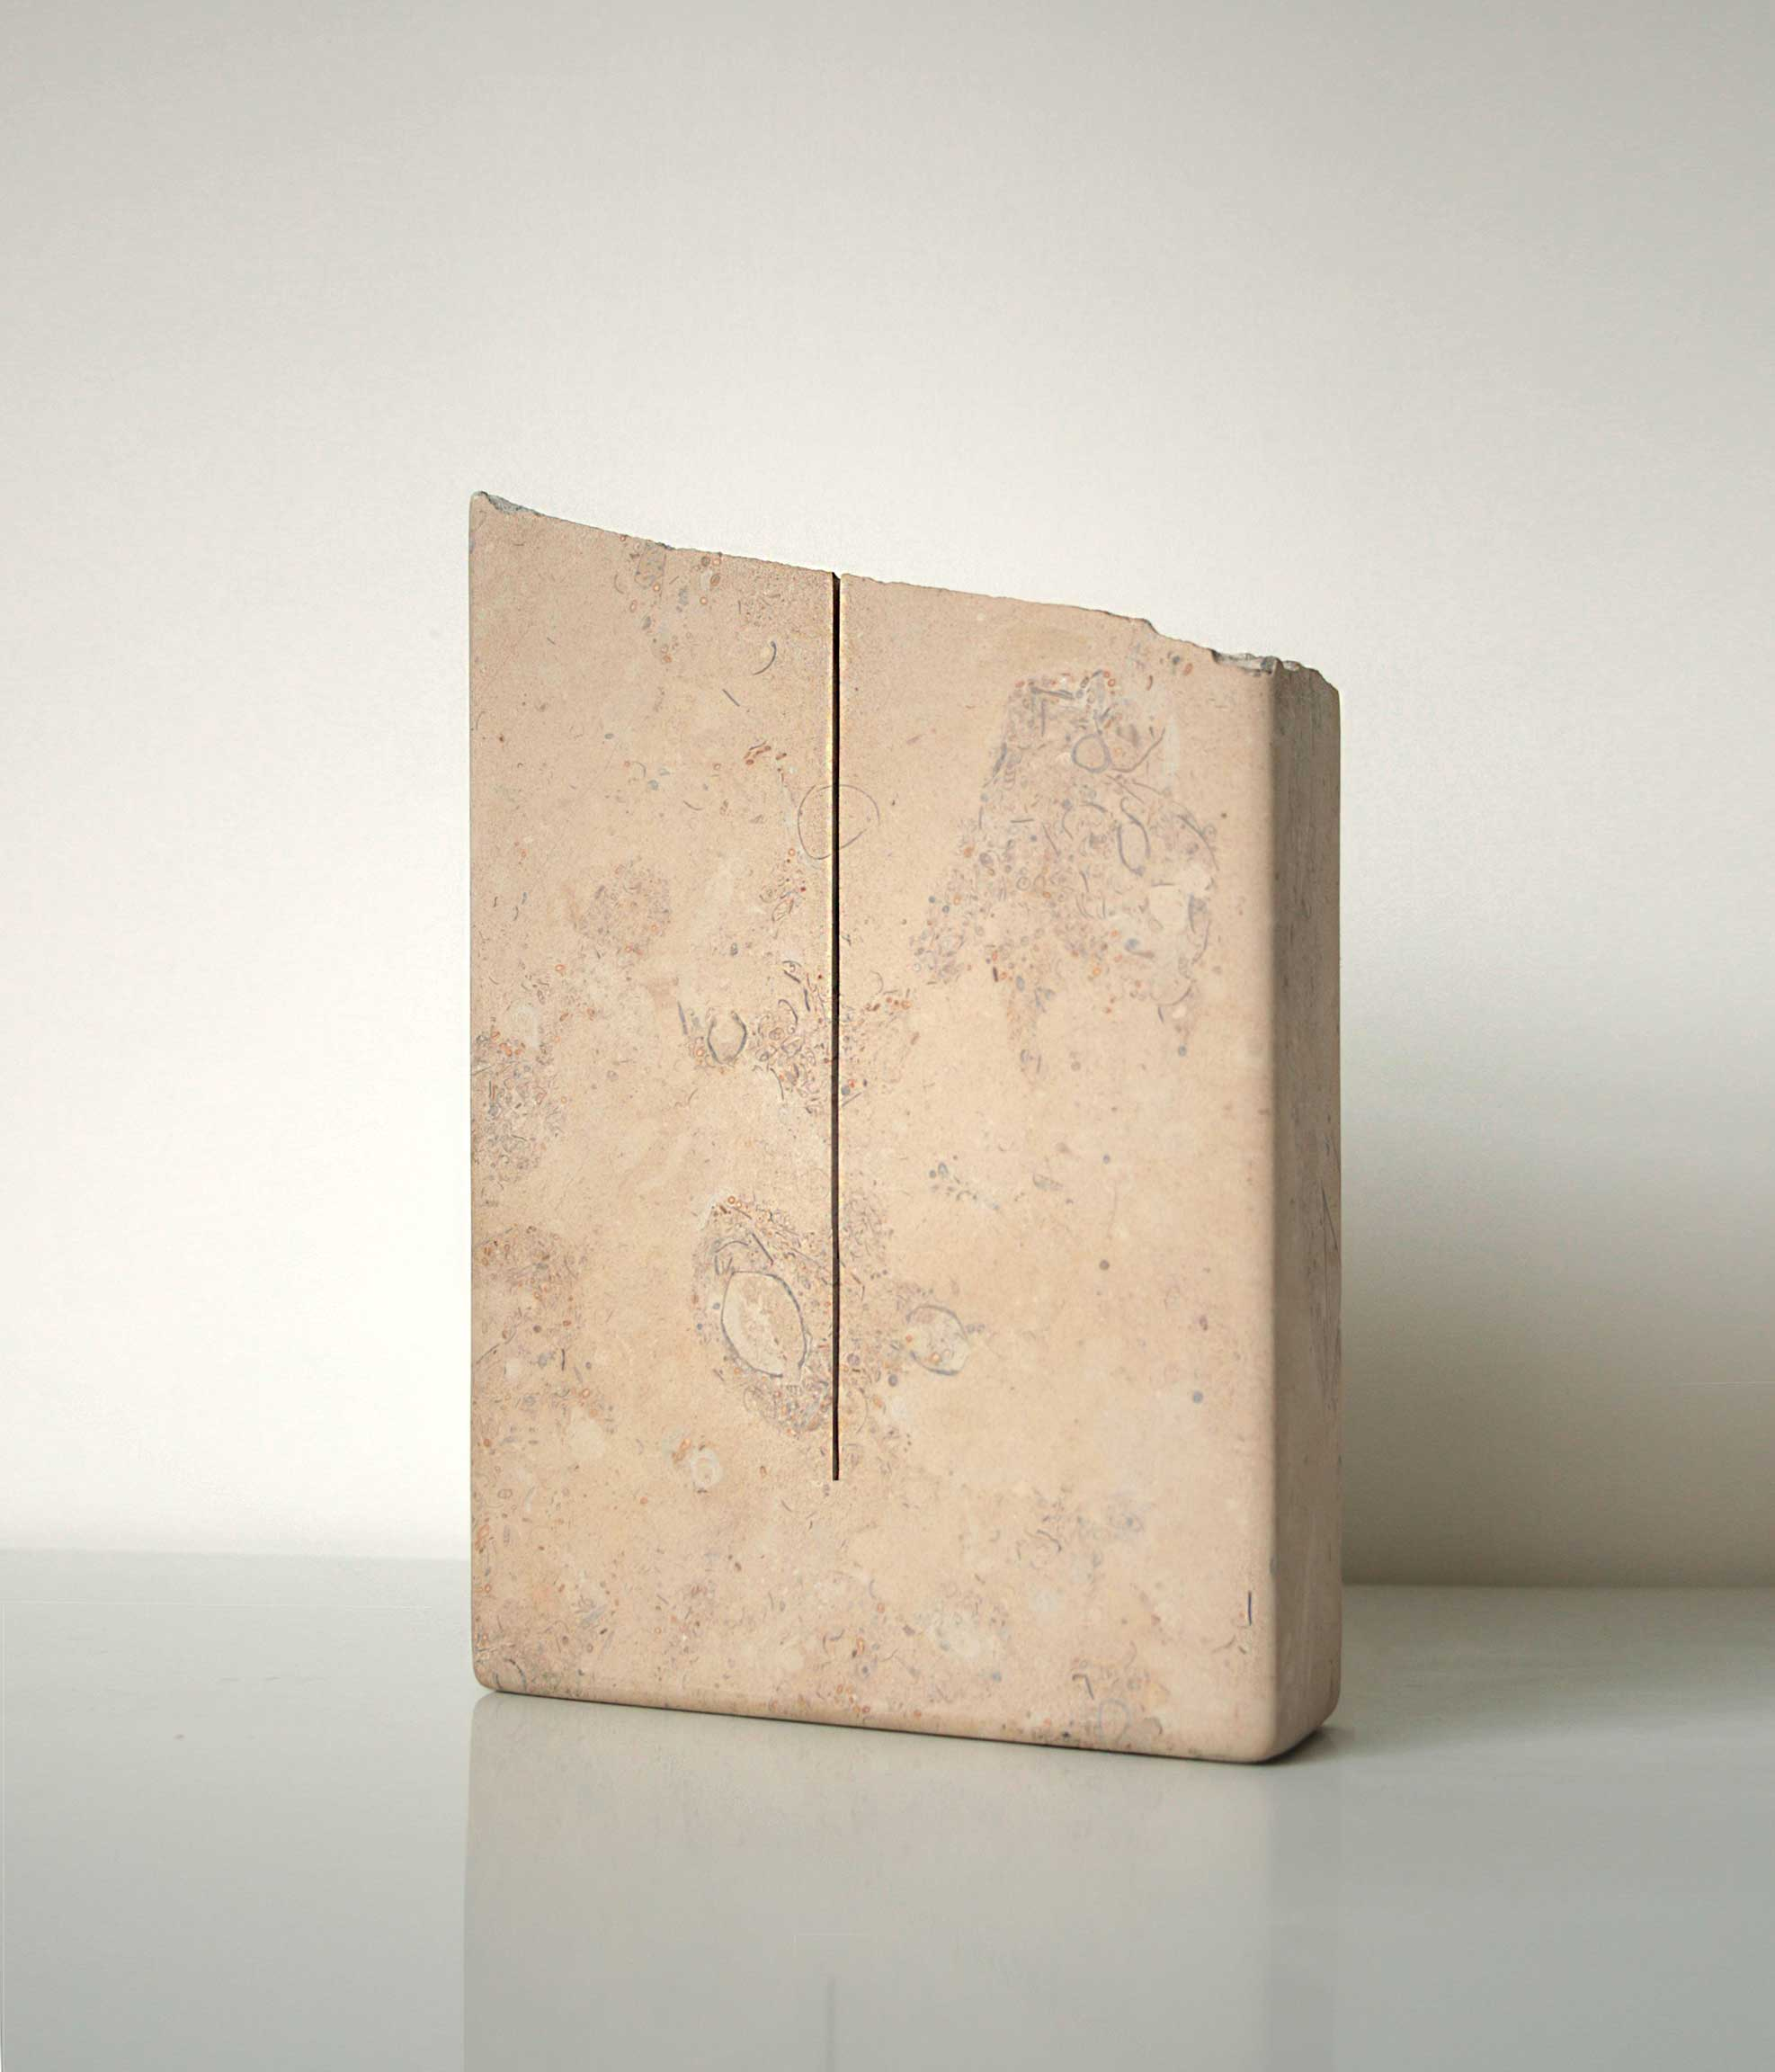 A PURE UNTROUBLED LINE  (after Iris Murdoch)  2019  Lincolnshire limestone – silver bed  21.4 x 15.0 x 4.0 cm